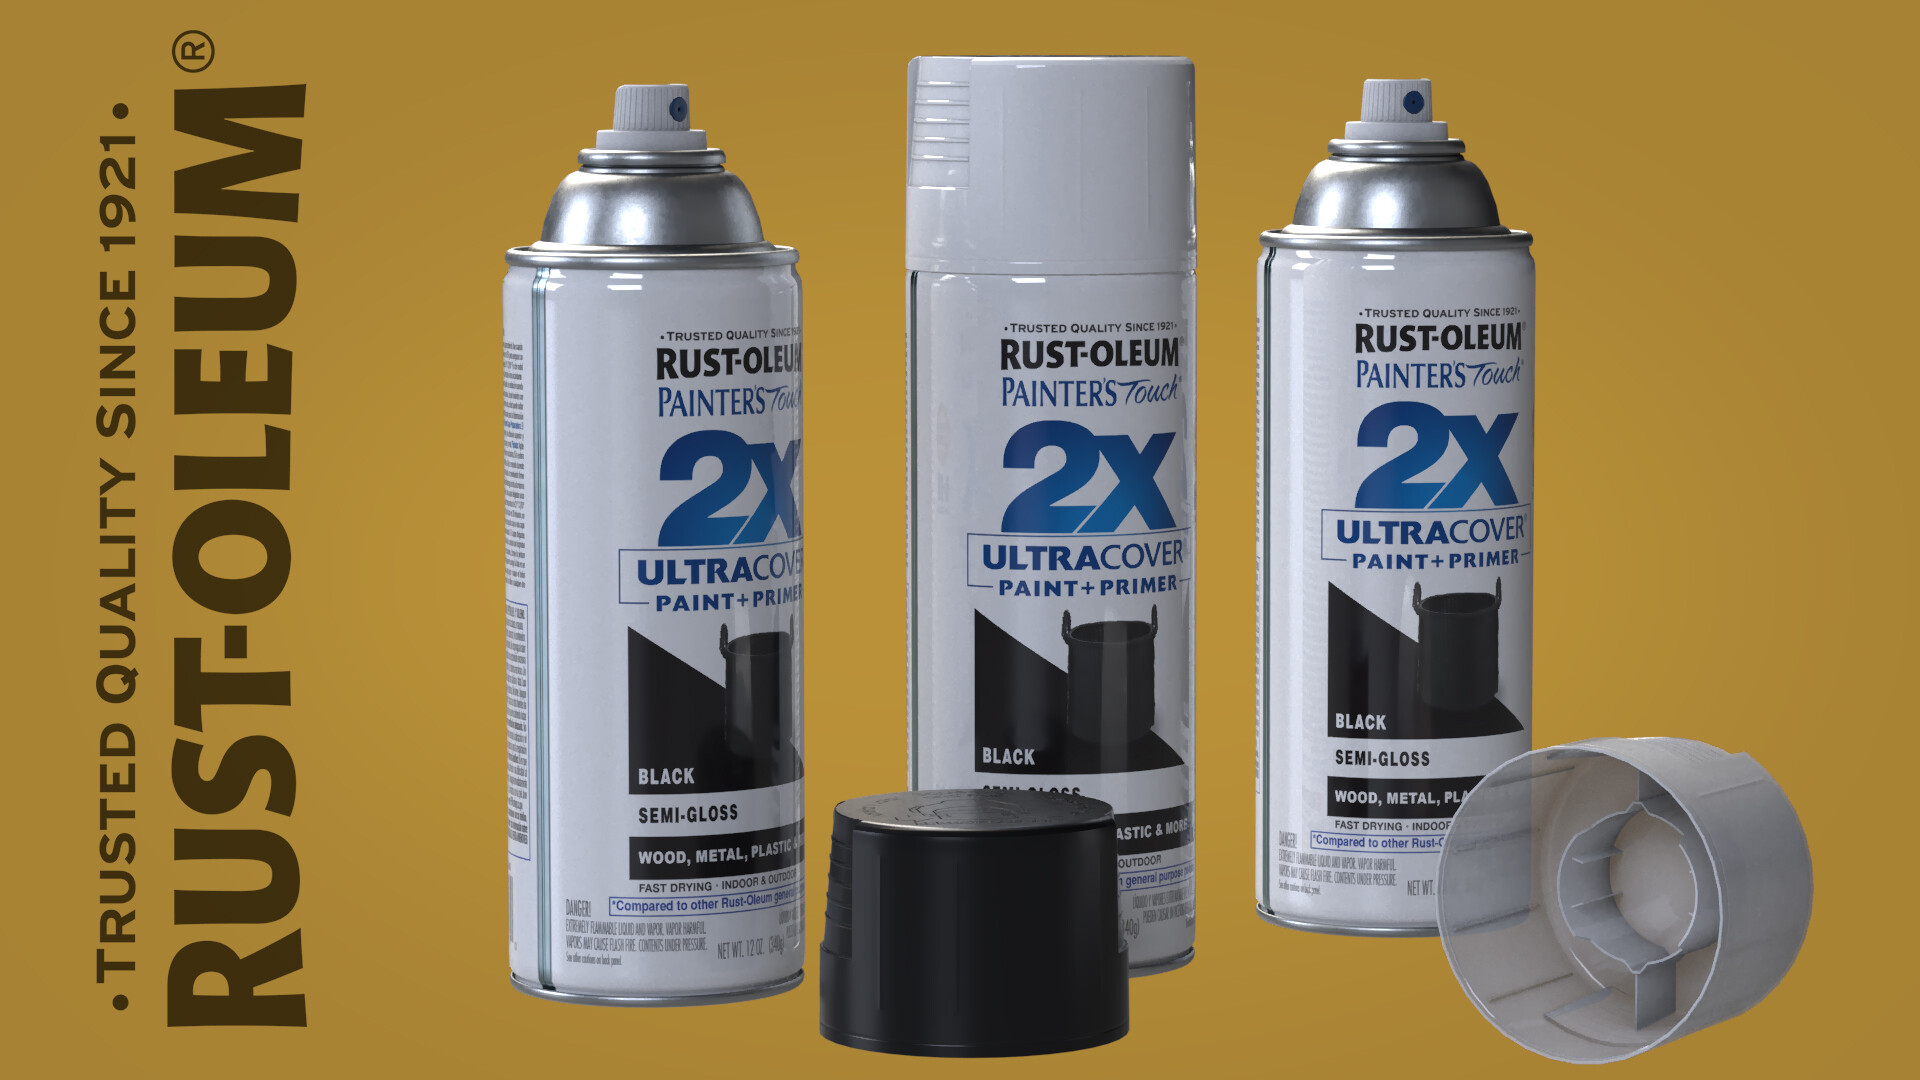 ArtStation - 3D MODELING :-: Rust-oleum Spray Paint Cans, Eric Hamrin